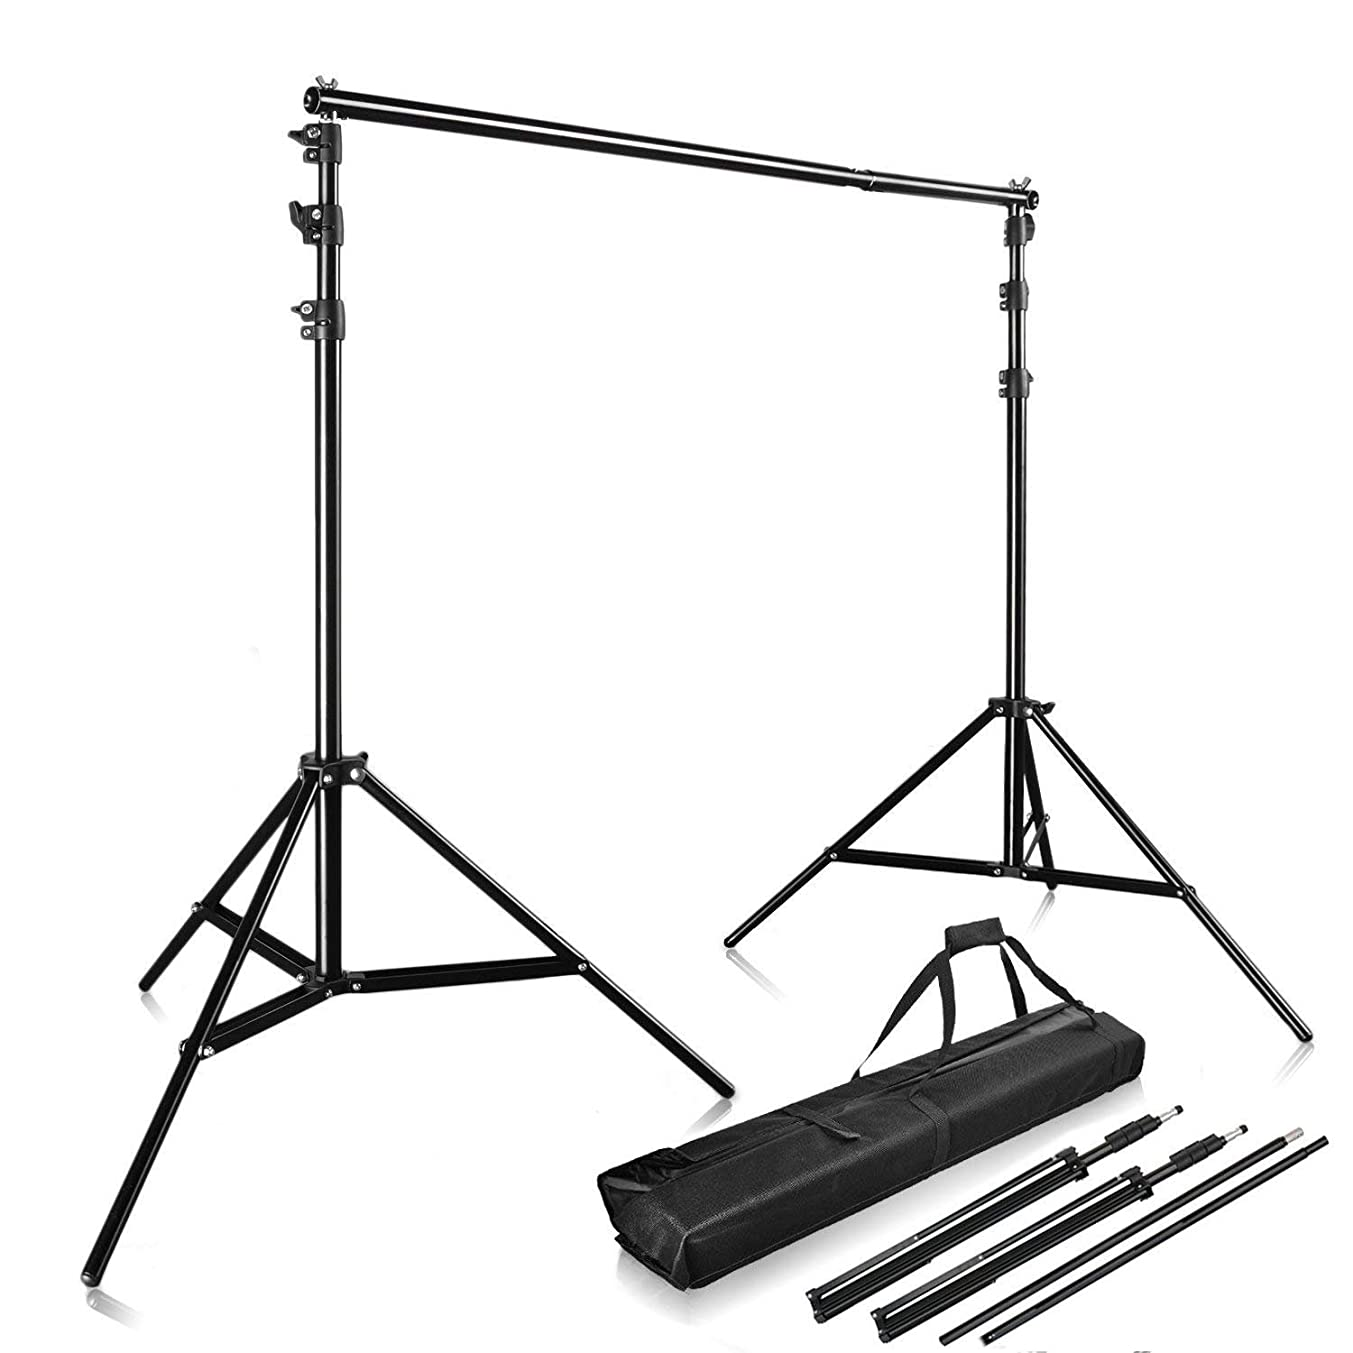 PHOTO MASTER Photography 10Ft x 9Ft Photo Video Studio Telescopic Aluminum Alloy Adjustable Portable Background Backdrop Stand Support System Kit Tripod with Carry Bag and Cross Bar